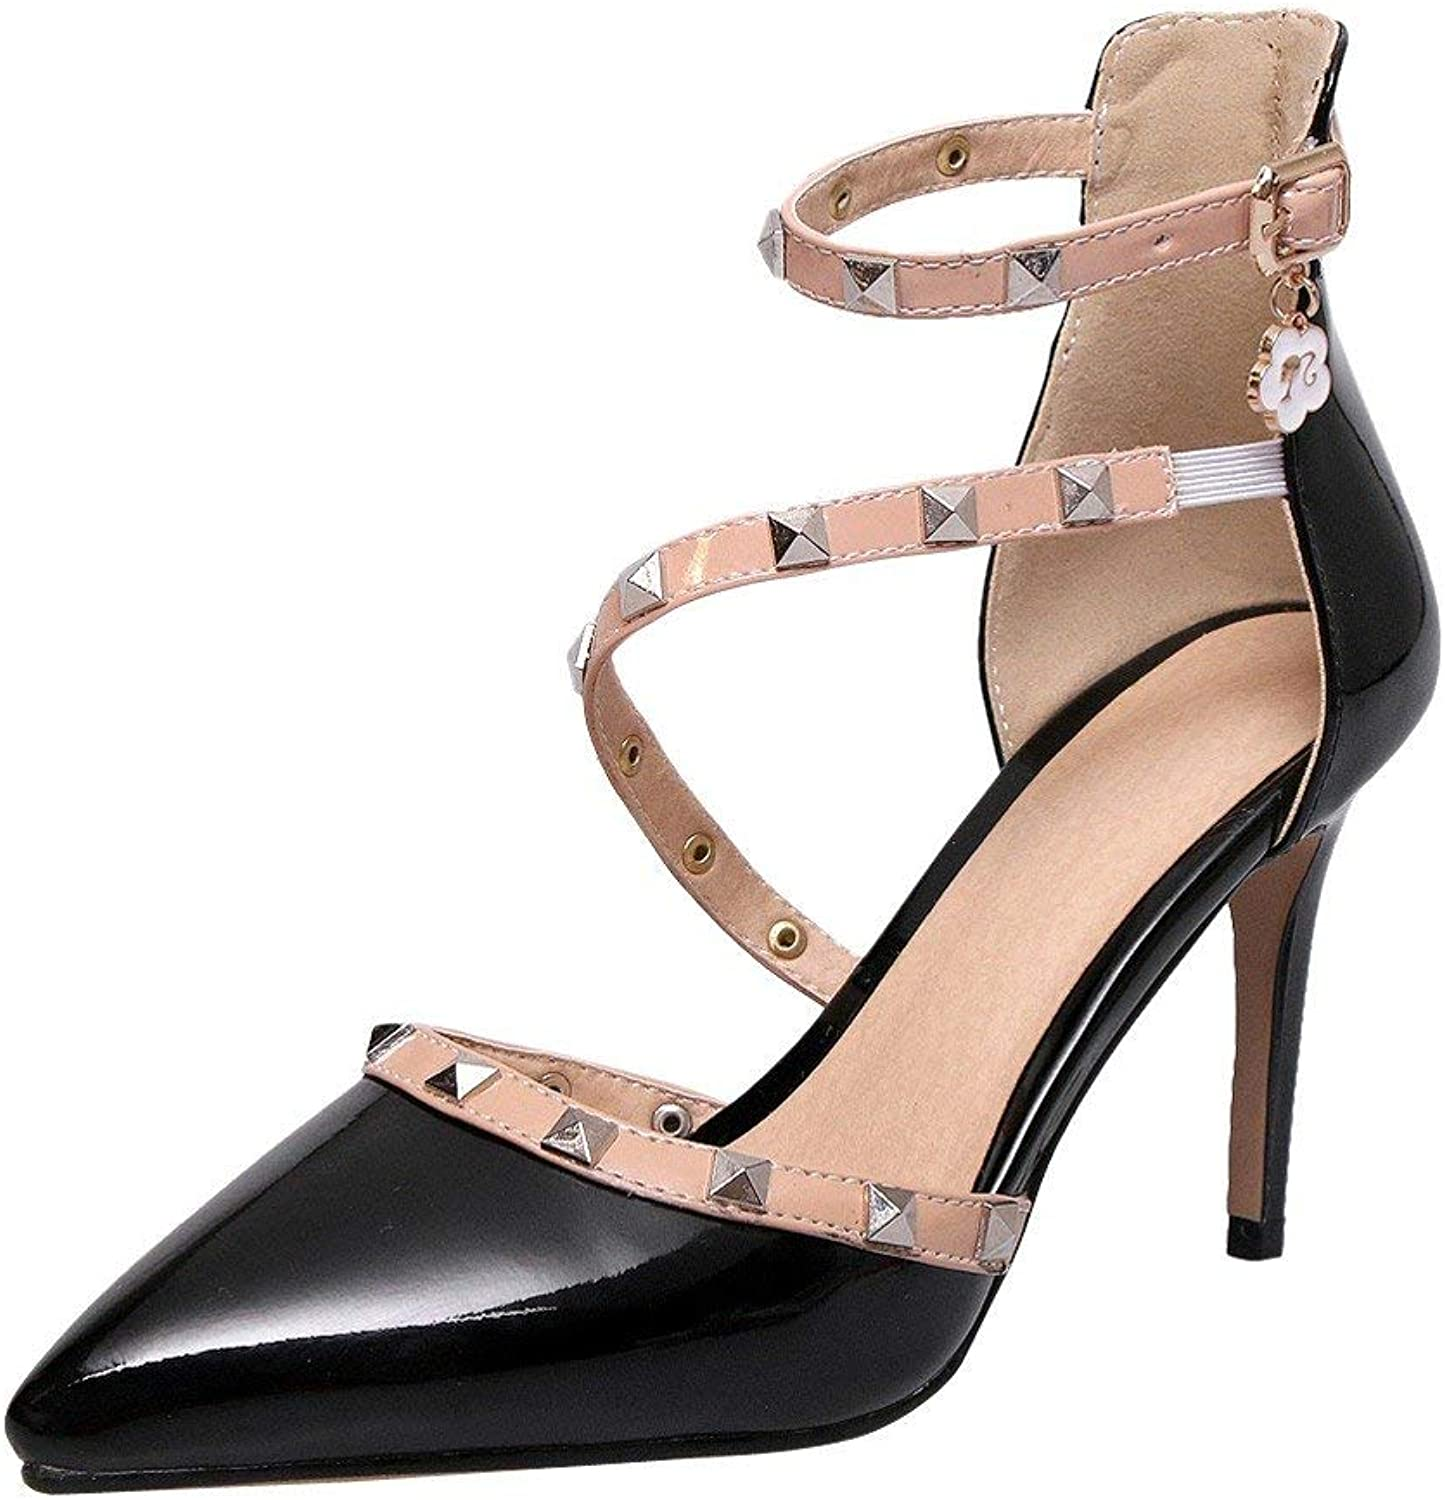 Gcanwea Women's Pointed Toe Ankle Strap Stiletto D'Orsay shoes Comfortable Elegant Patent Leather Dress Breathable Sexy Rivets Skinny Ladies Fashion Red 5 M US shoes